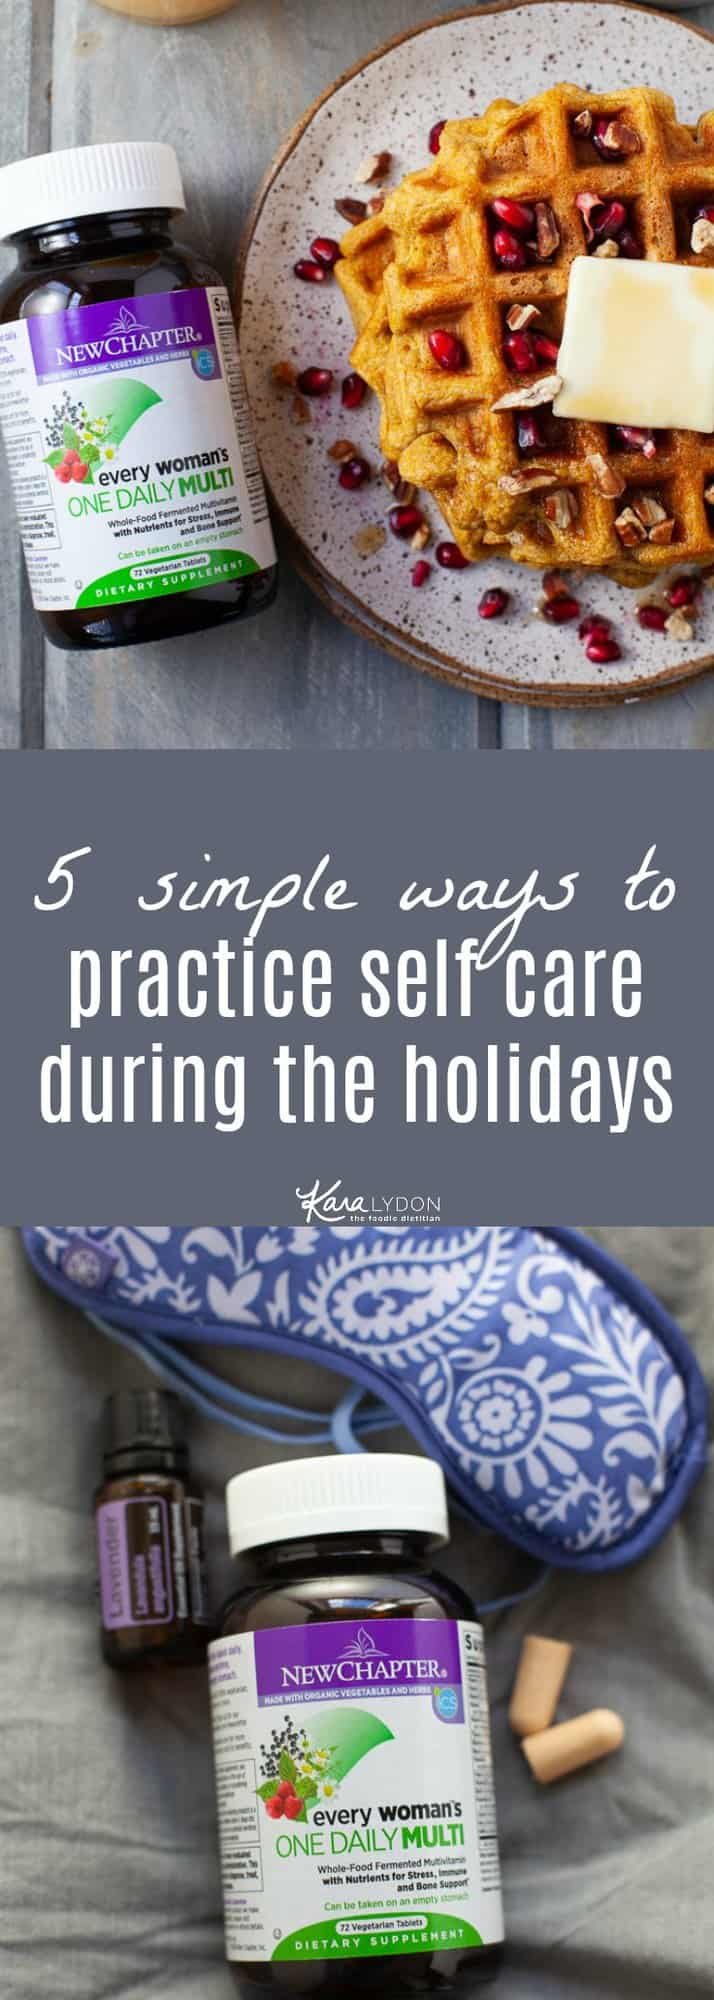 The holidays can be a stressful time for many. To help support your health and wellbeing during a busy season, practice these 5 simple tips for self care. #selfcare #holidays